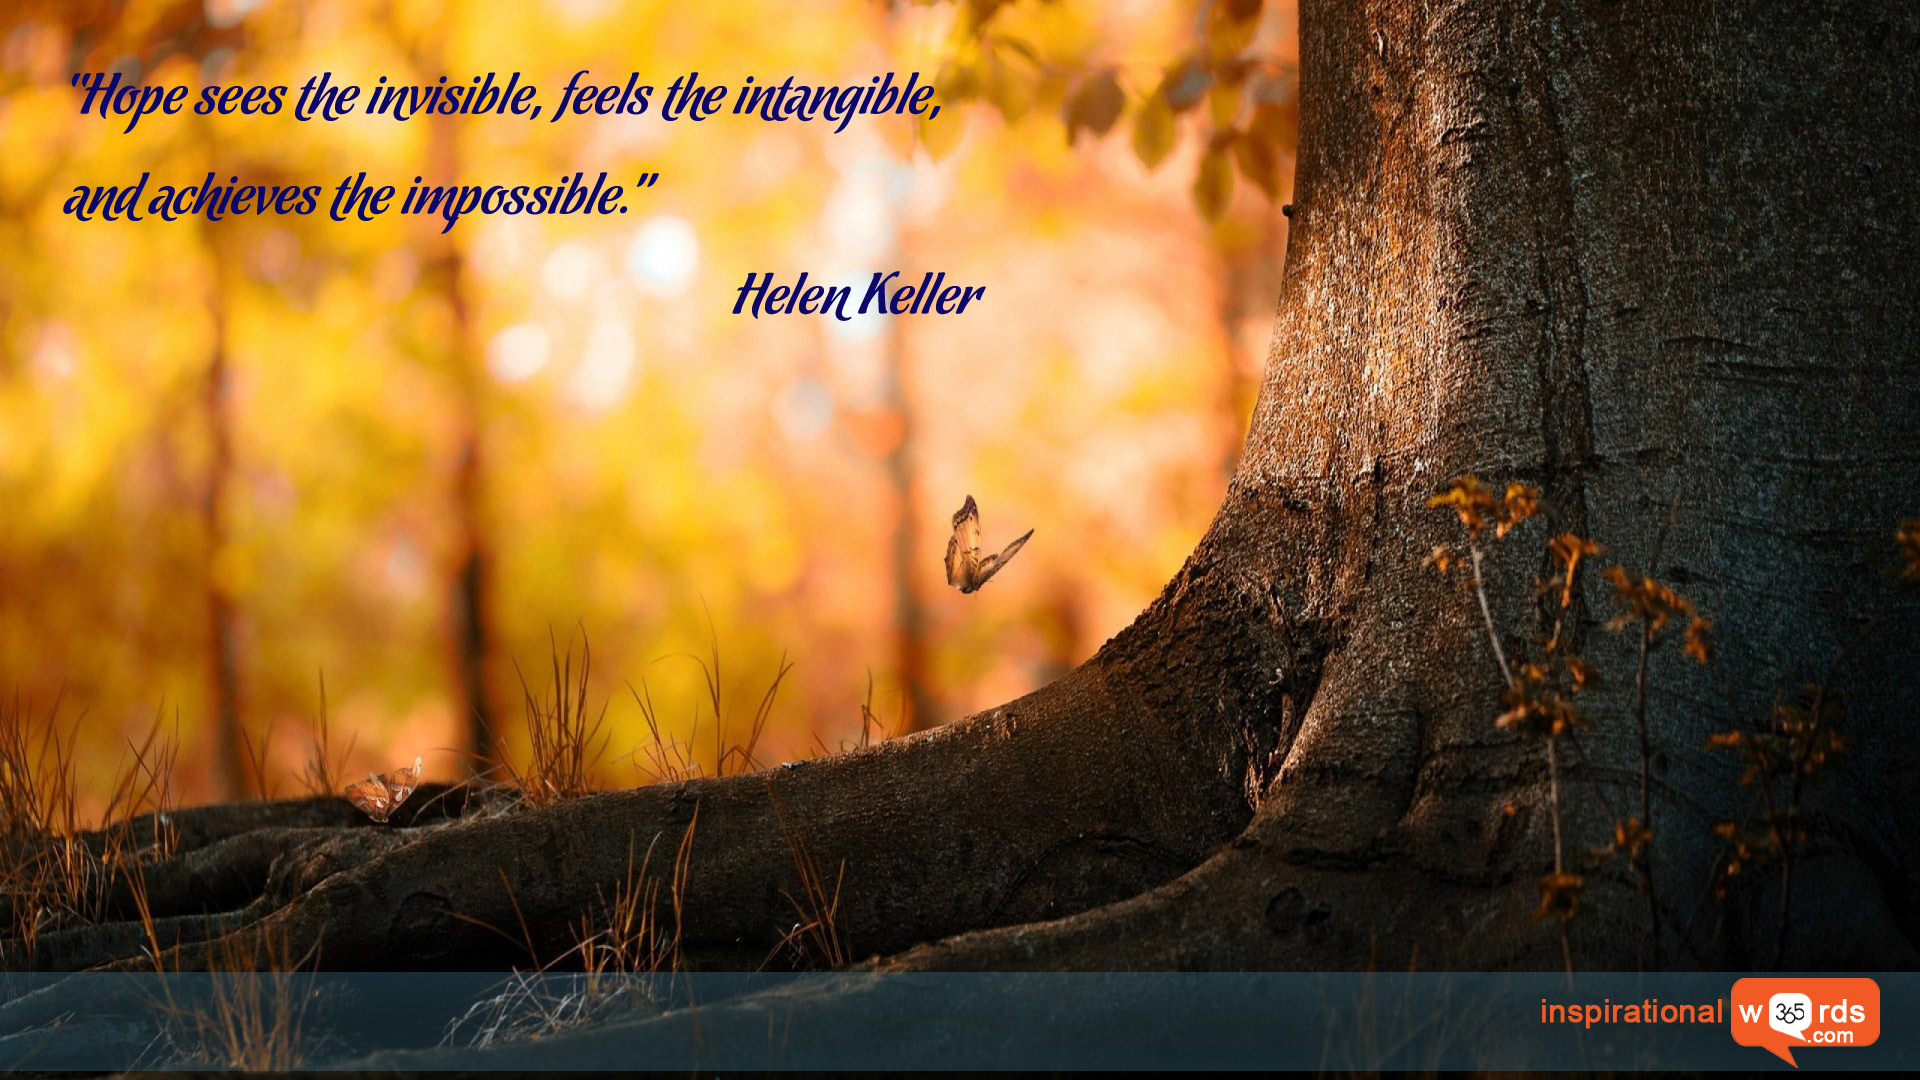 Inspirational Wallpaper Quote by Helen Keller